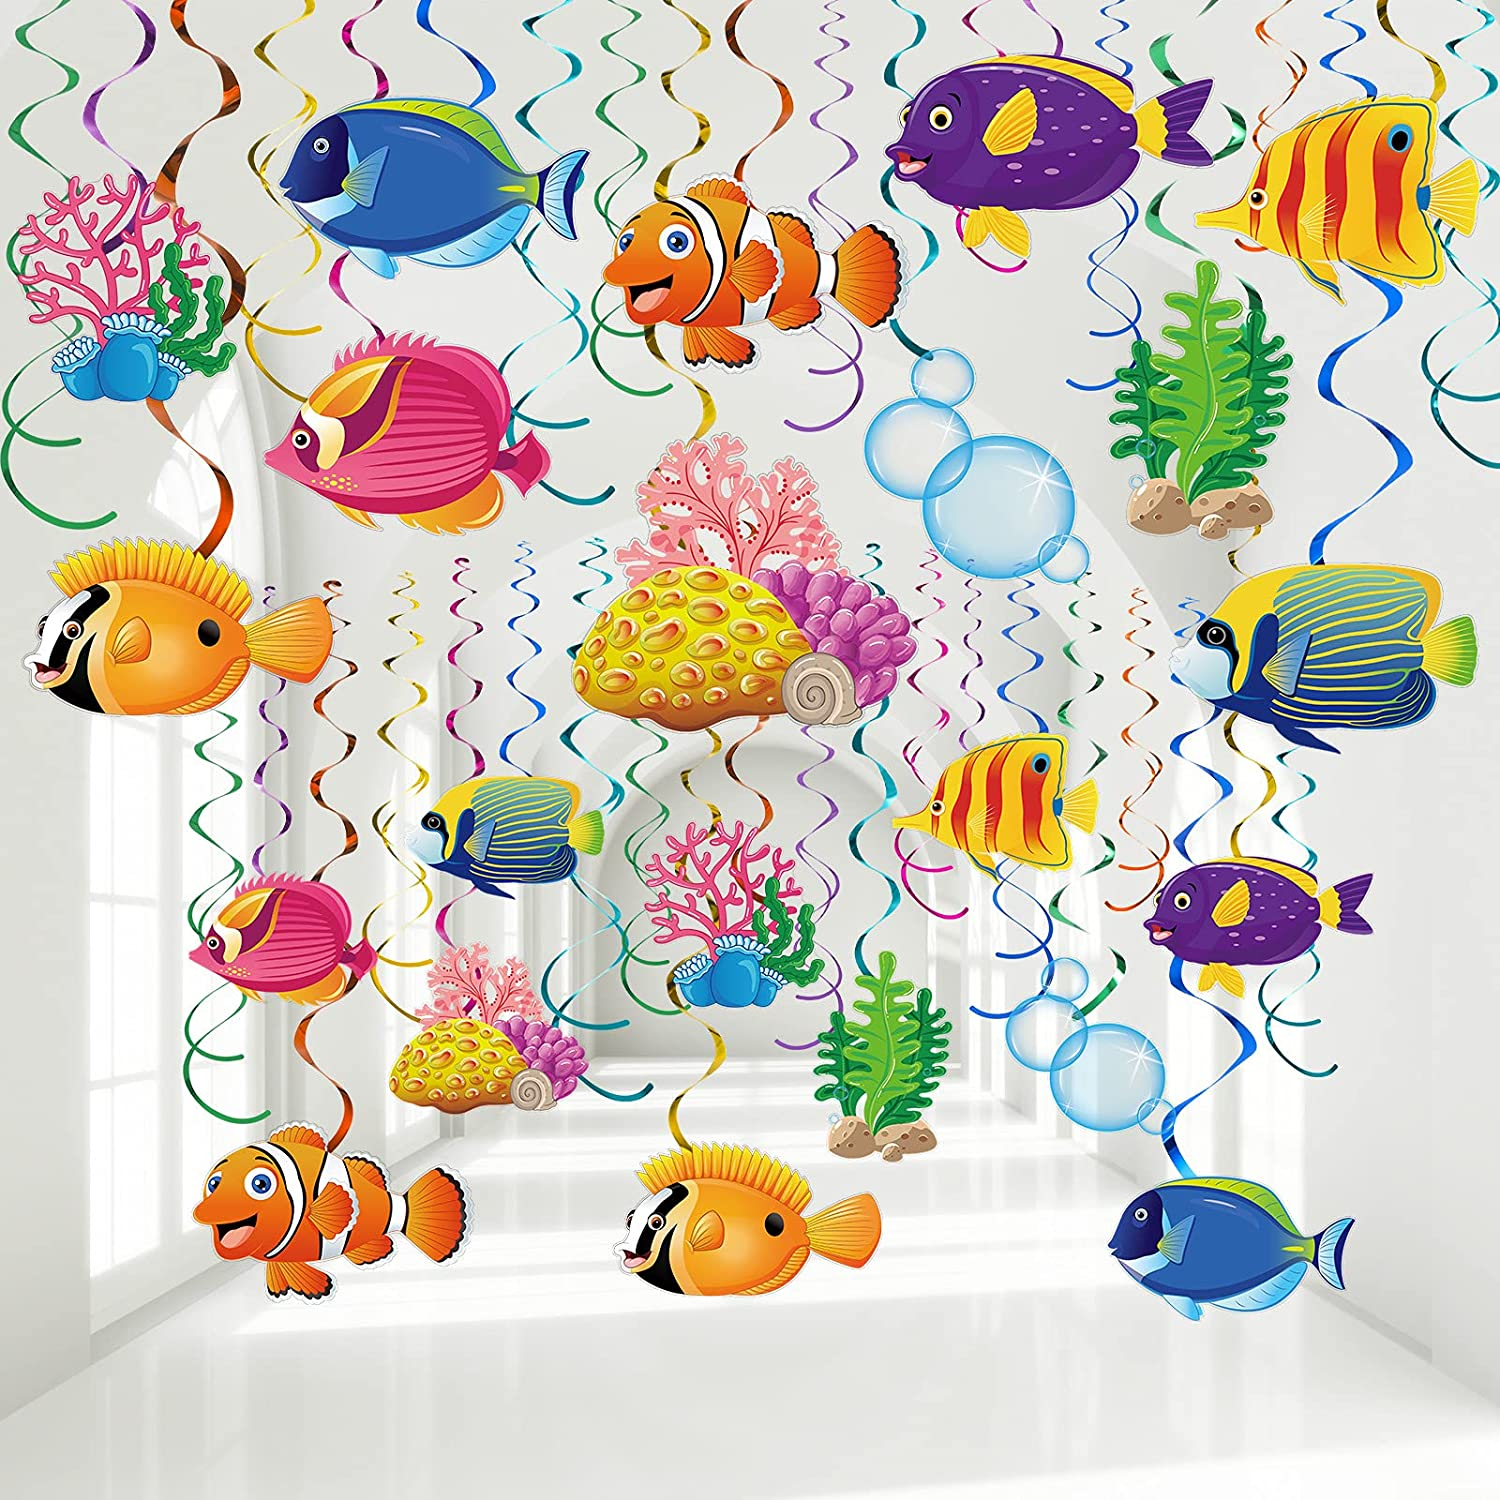 30 Pieces Tropical Fish Hanging Swirls Decorations, Under the Sea Birthday Party Ceiling Decor for Boys Girls Ocean Themed Party Mermaid Creatures Baby Beach Themed Party Supplies